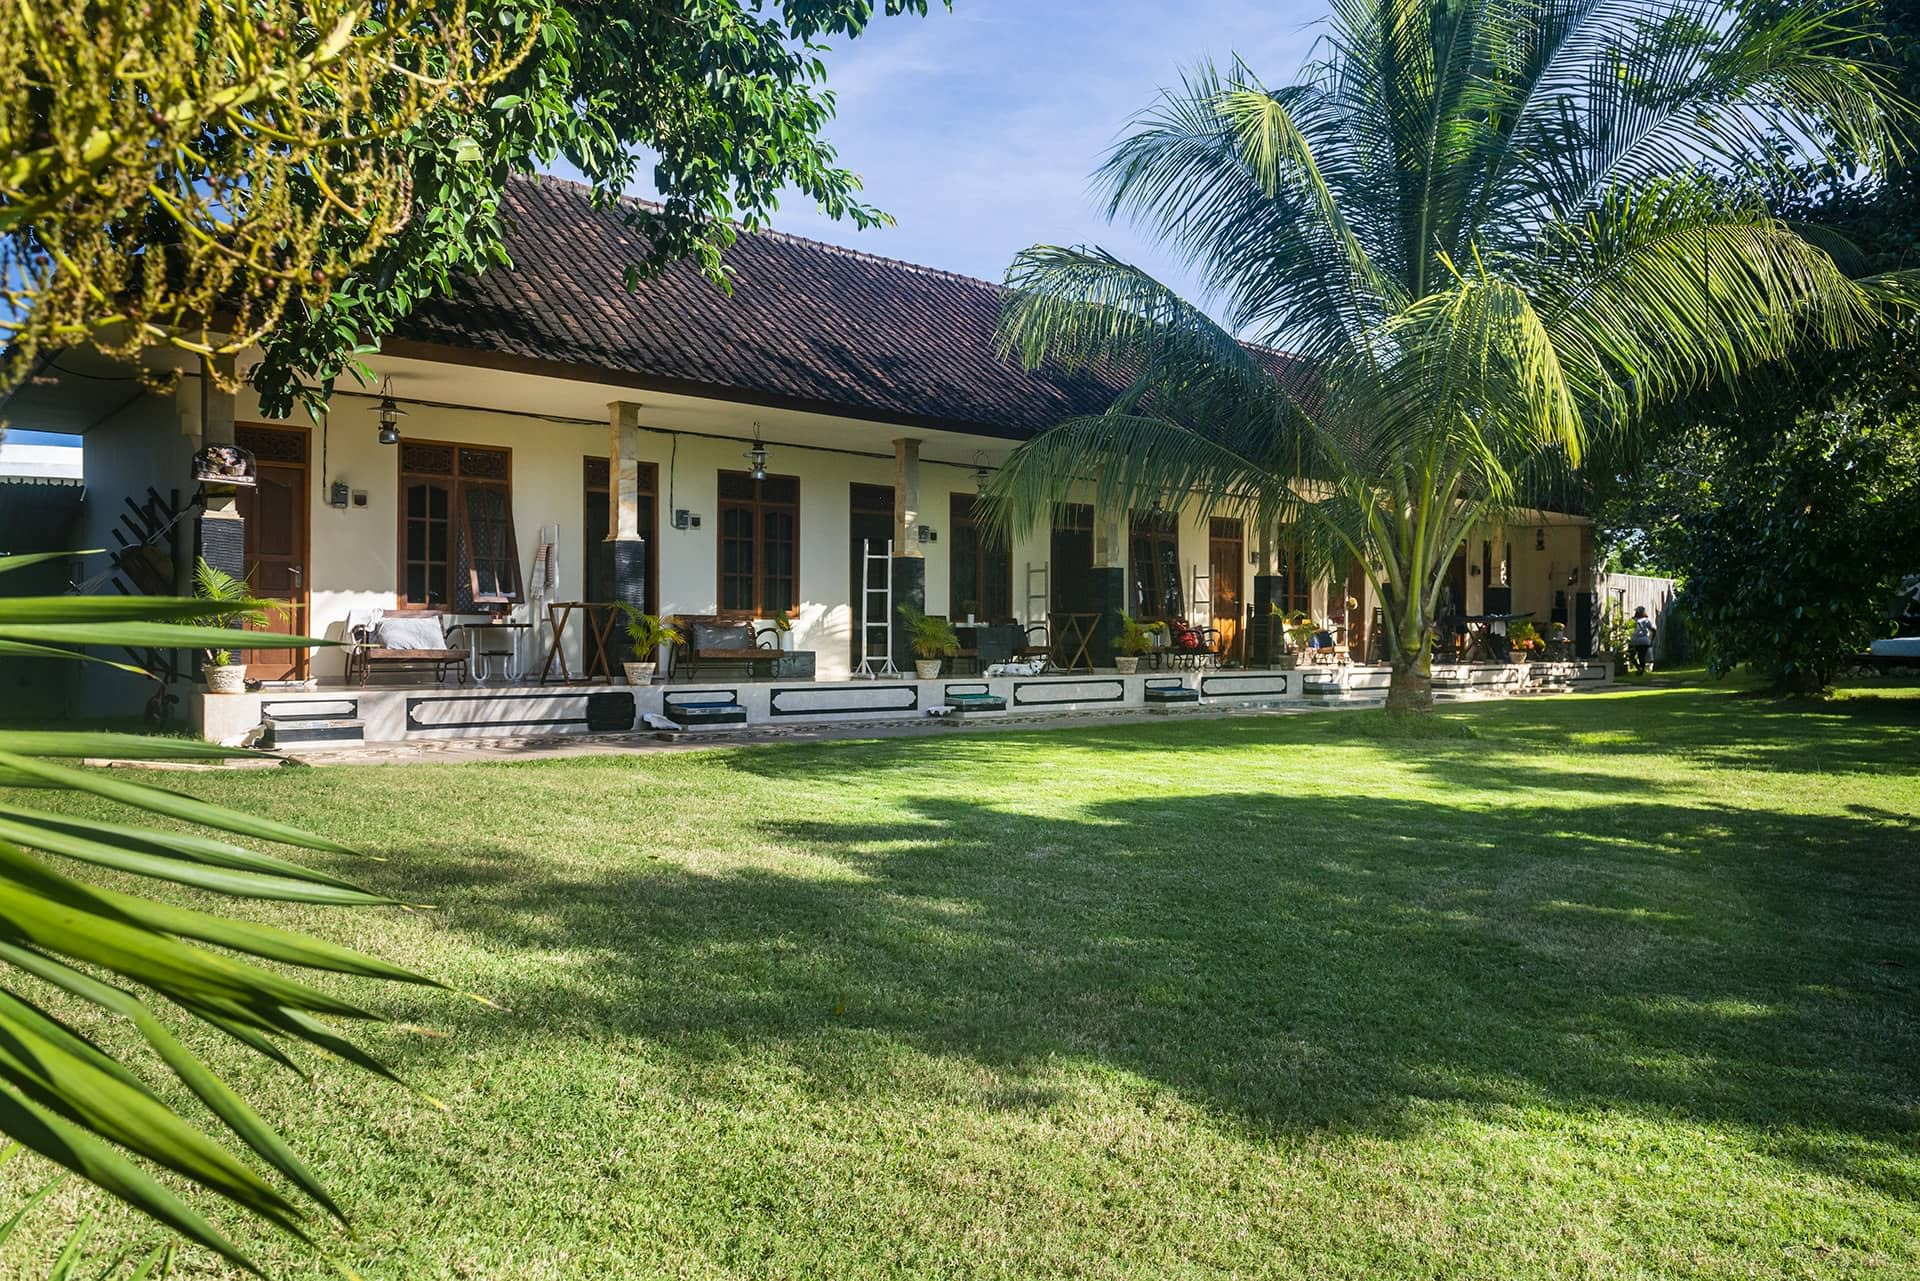 the bali boarding house